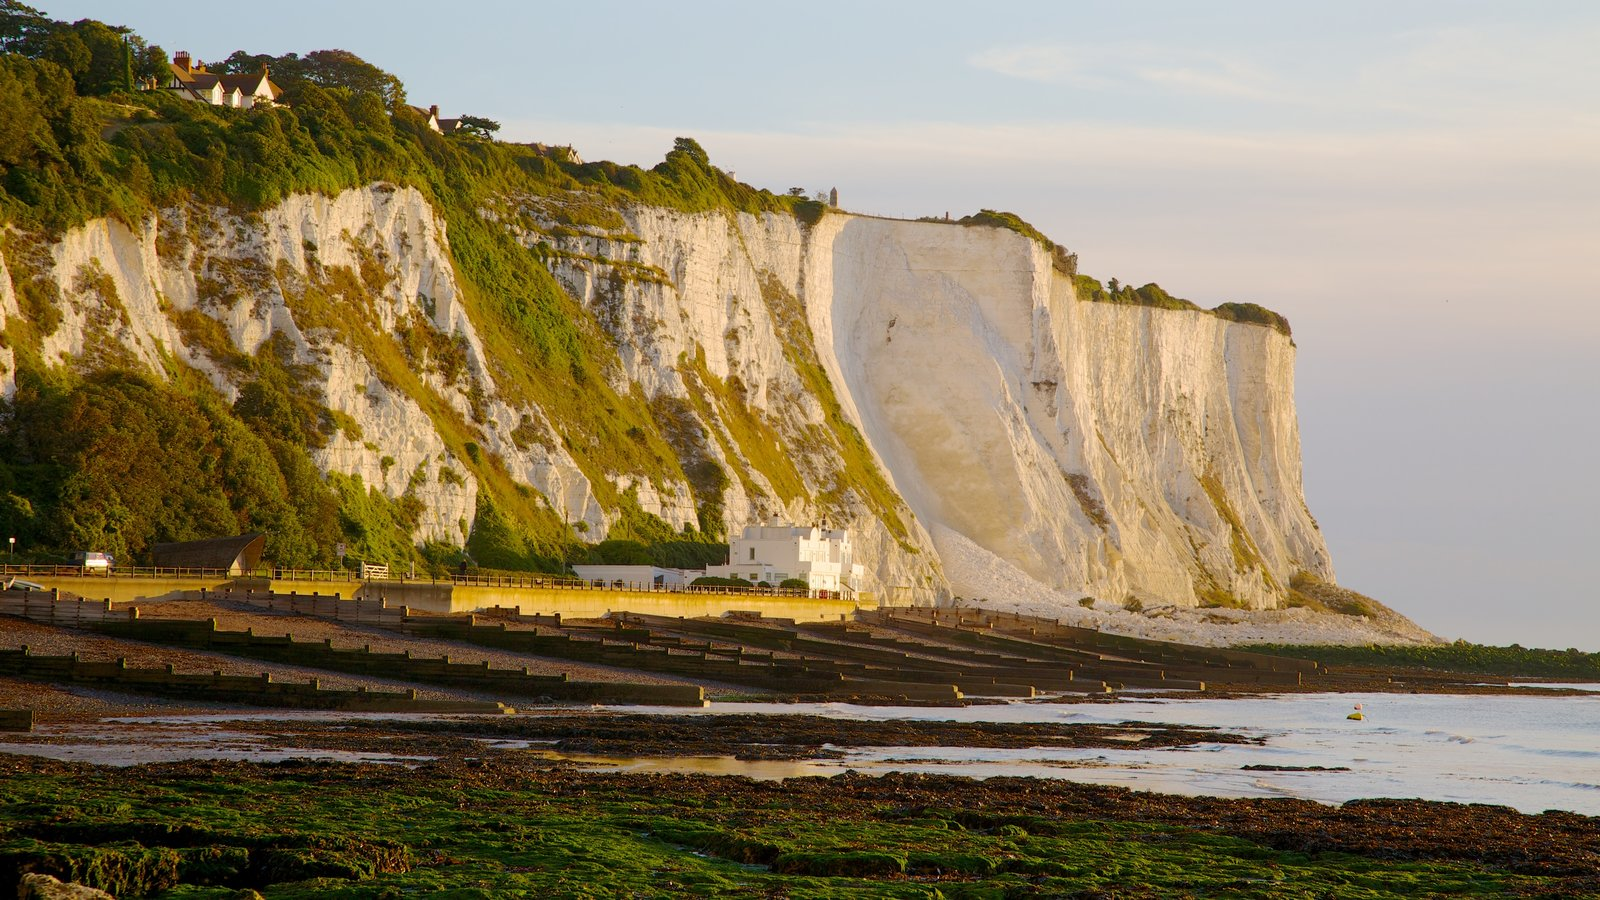 White Cliffs of Dover featuring rocky coastline, landscape views and a pebble beach